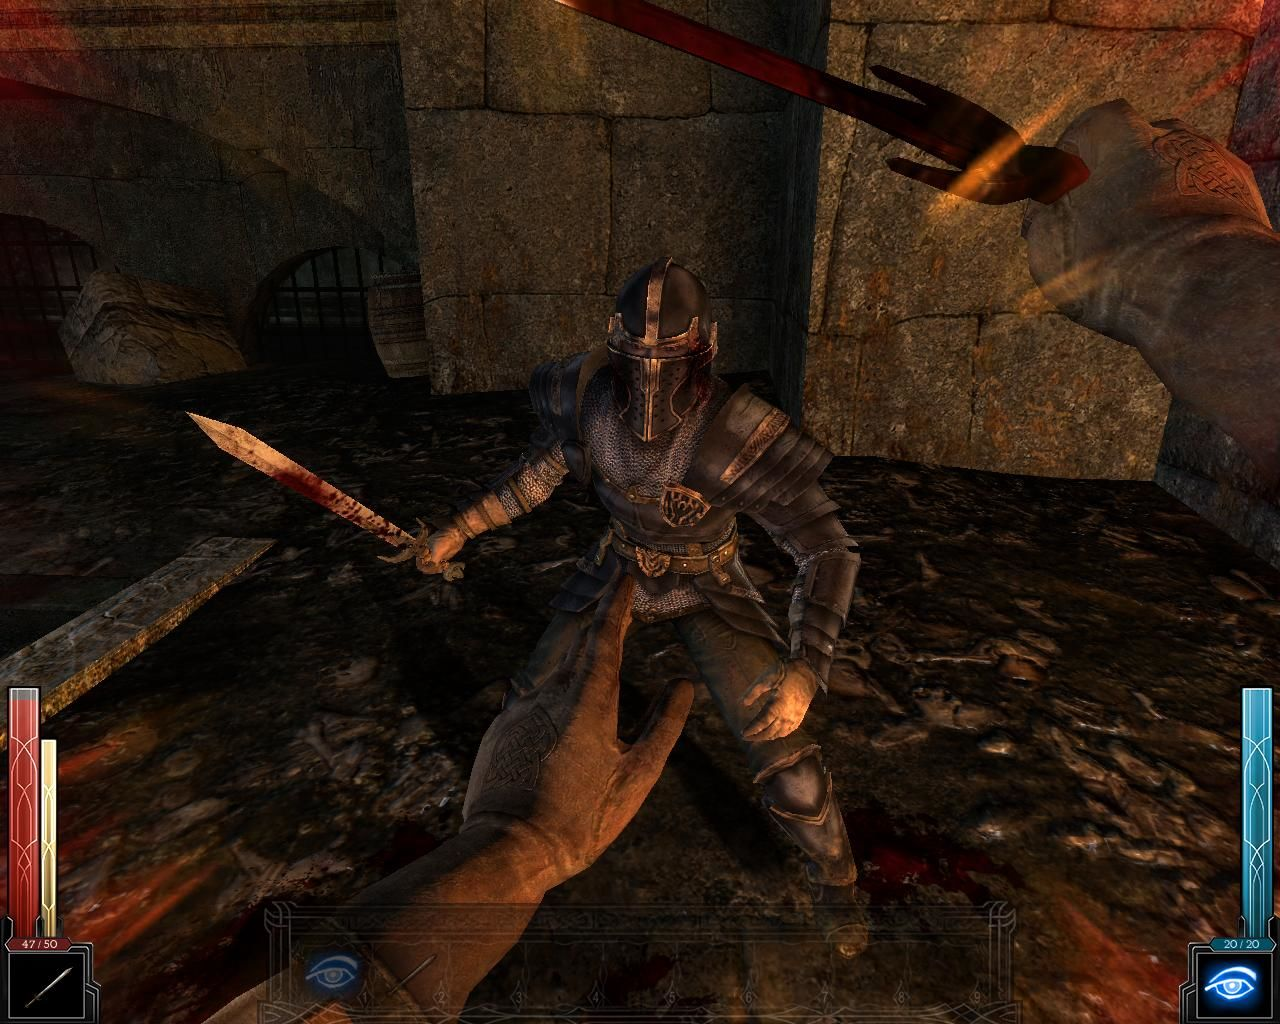 Dark Messiah: Might and Magic Windows When your adrenaline (yellow bar) is full, deliver a Power Attack to make a Fatality.